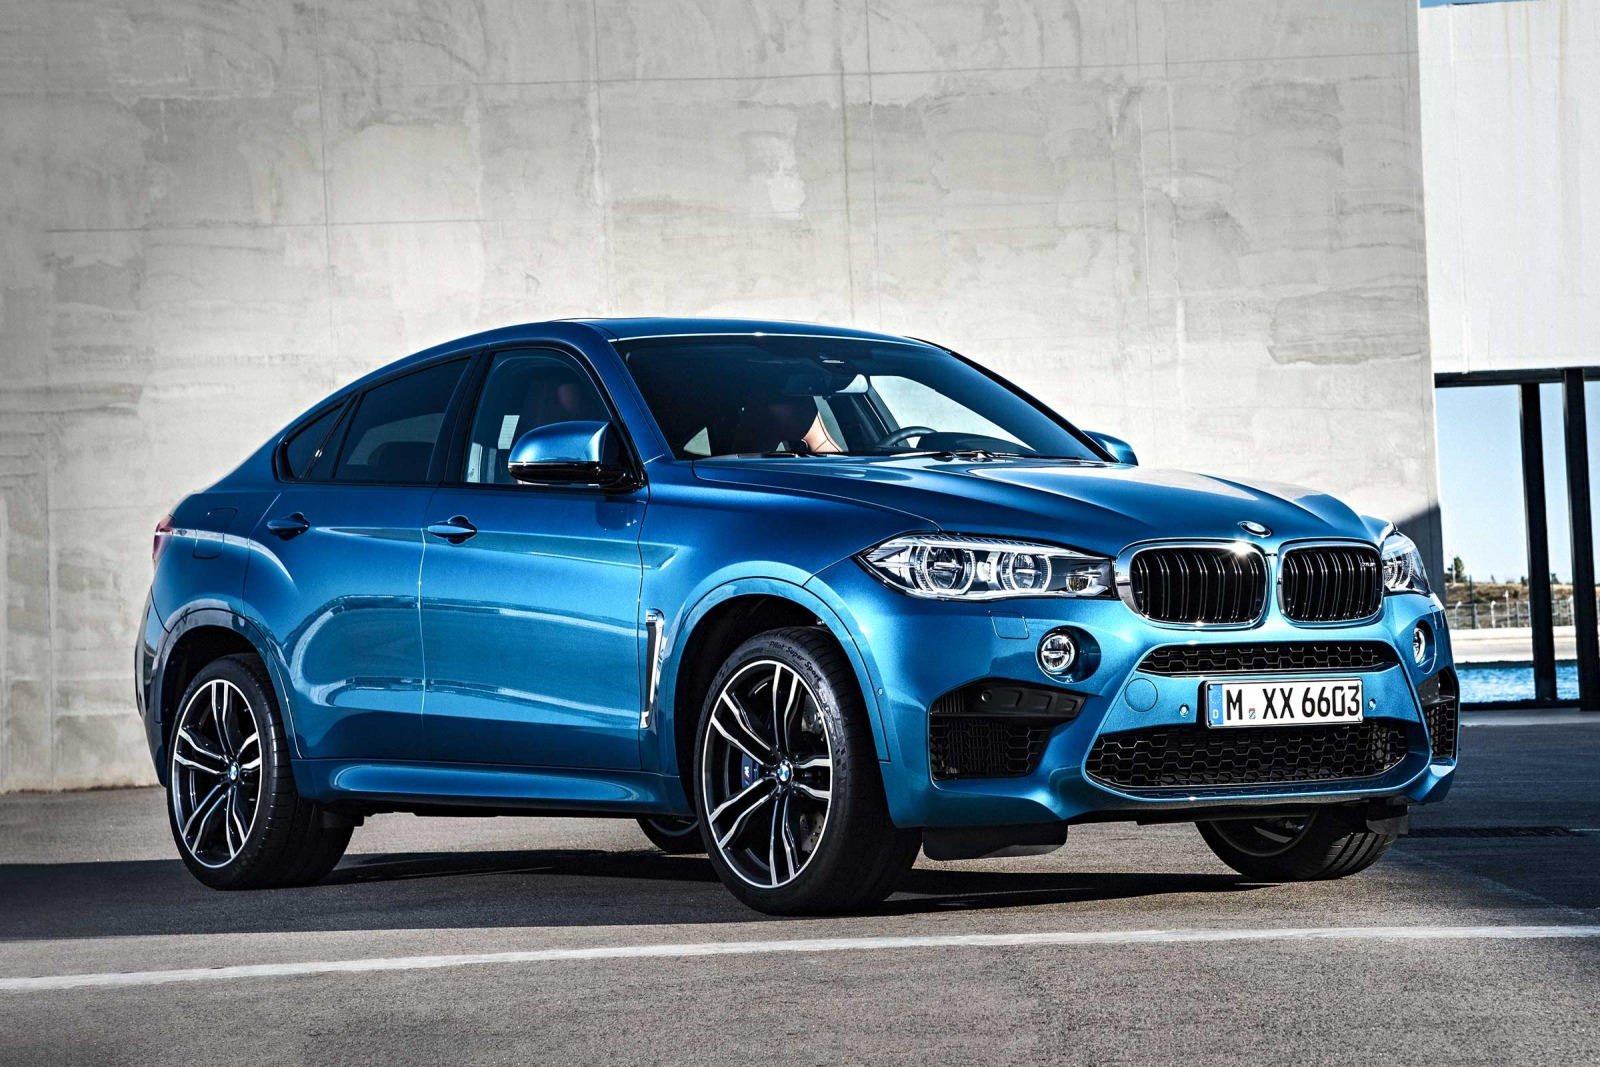 2018 bmw x6 m review trims specs and price carbuzz. Black Bedroom Furniture Sets. Home Design Ideas